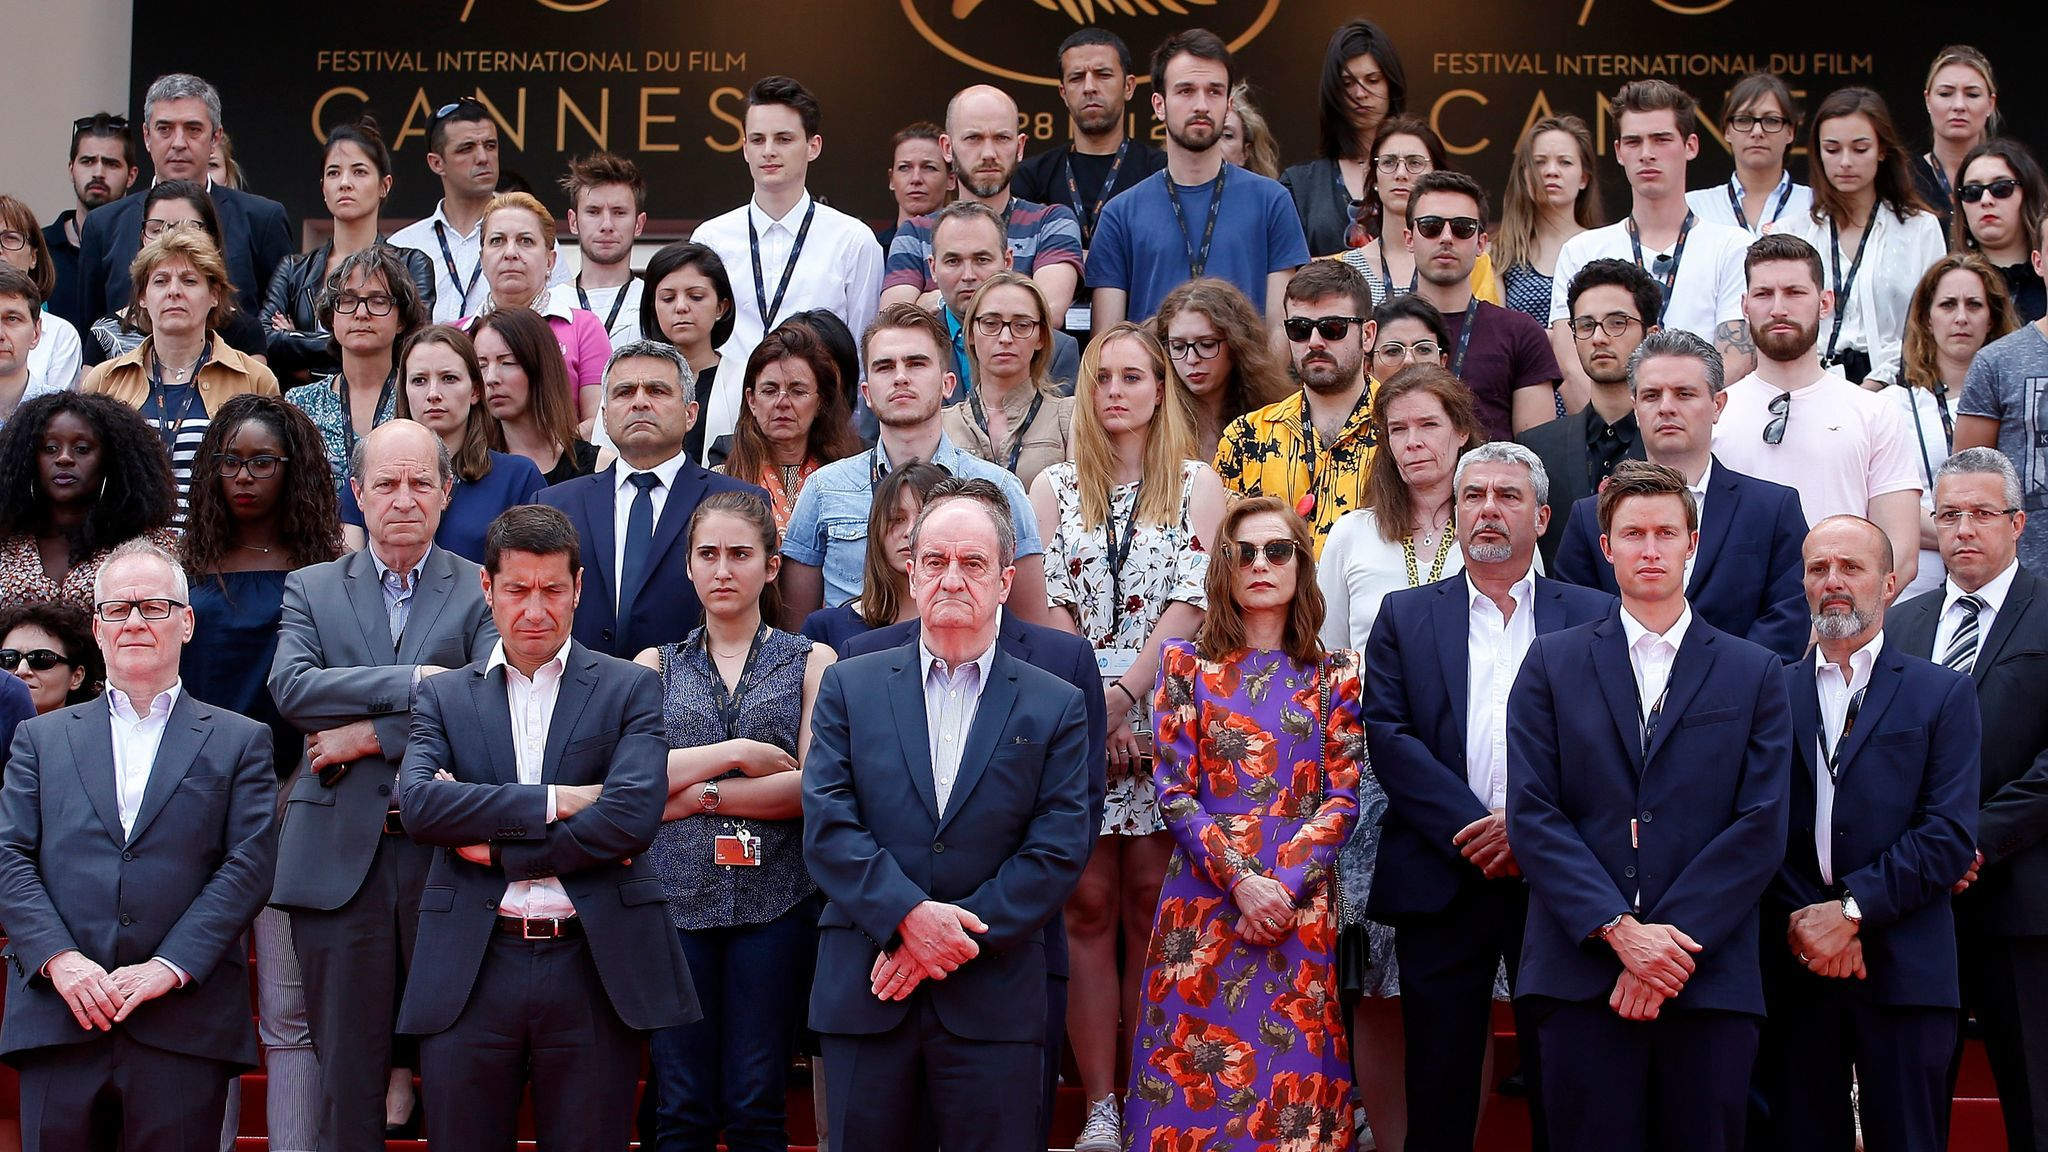 A moment of silence at Cannes for Manchester: Front row, from left, festival director Thierry Fremaux, Cannes Mayor David Lisnard, festival President Pierre Lescure, actress Isabelle Huppert and staff.